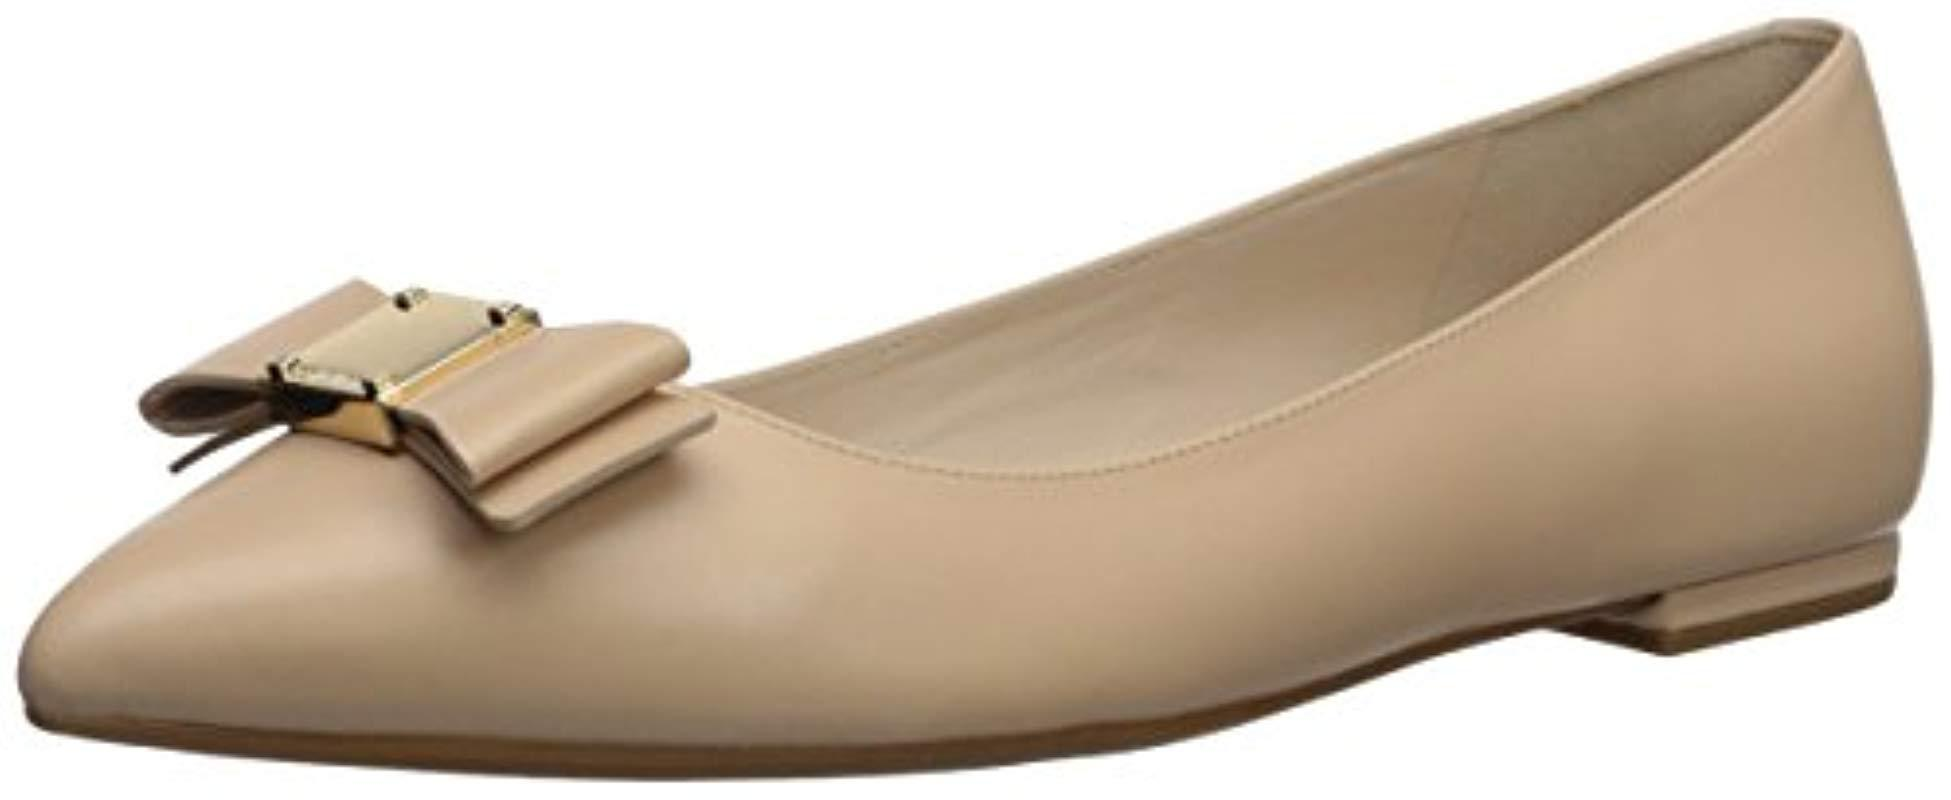 20b3b869d32 Lyst - Cole Haan Tali Bow Skimmer Ballet Flat in Natural - Save 59%